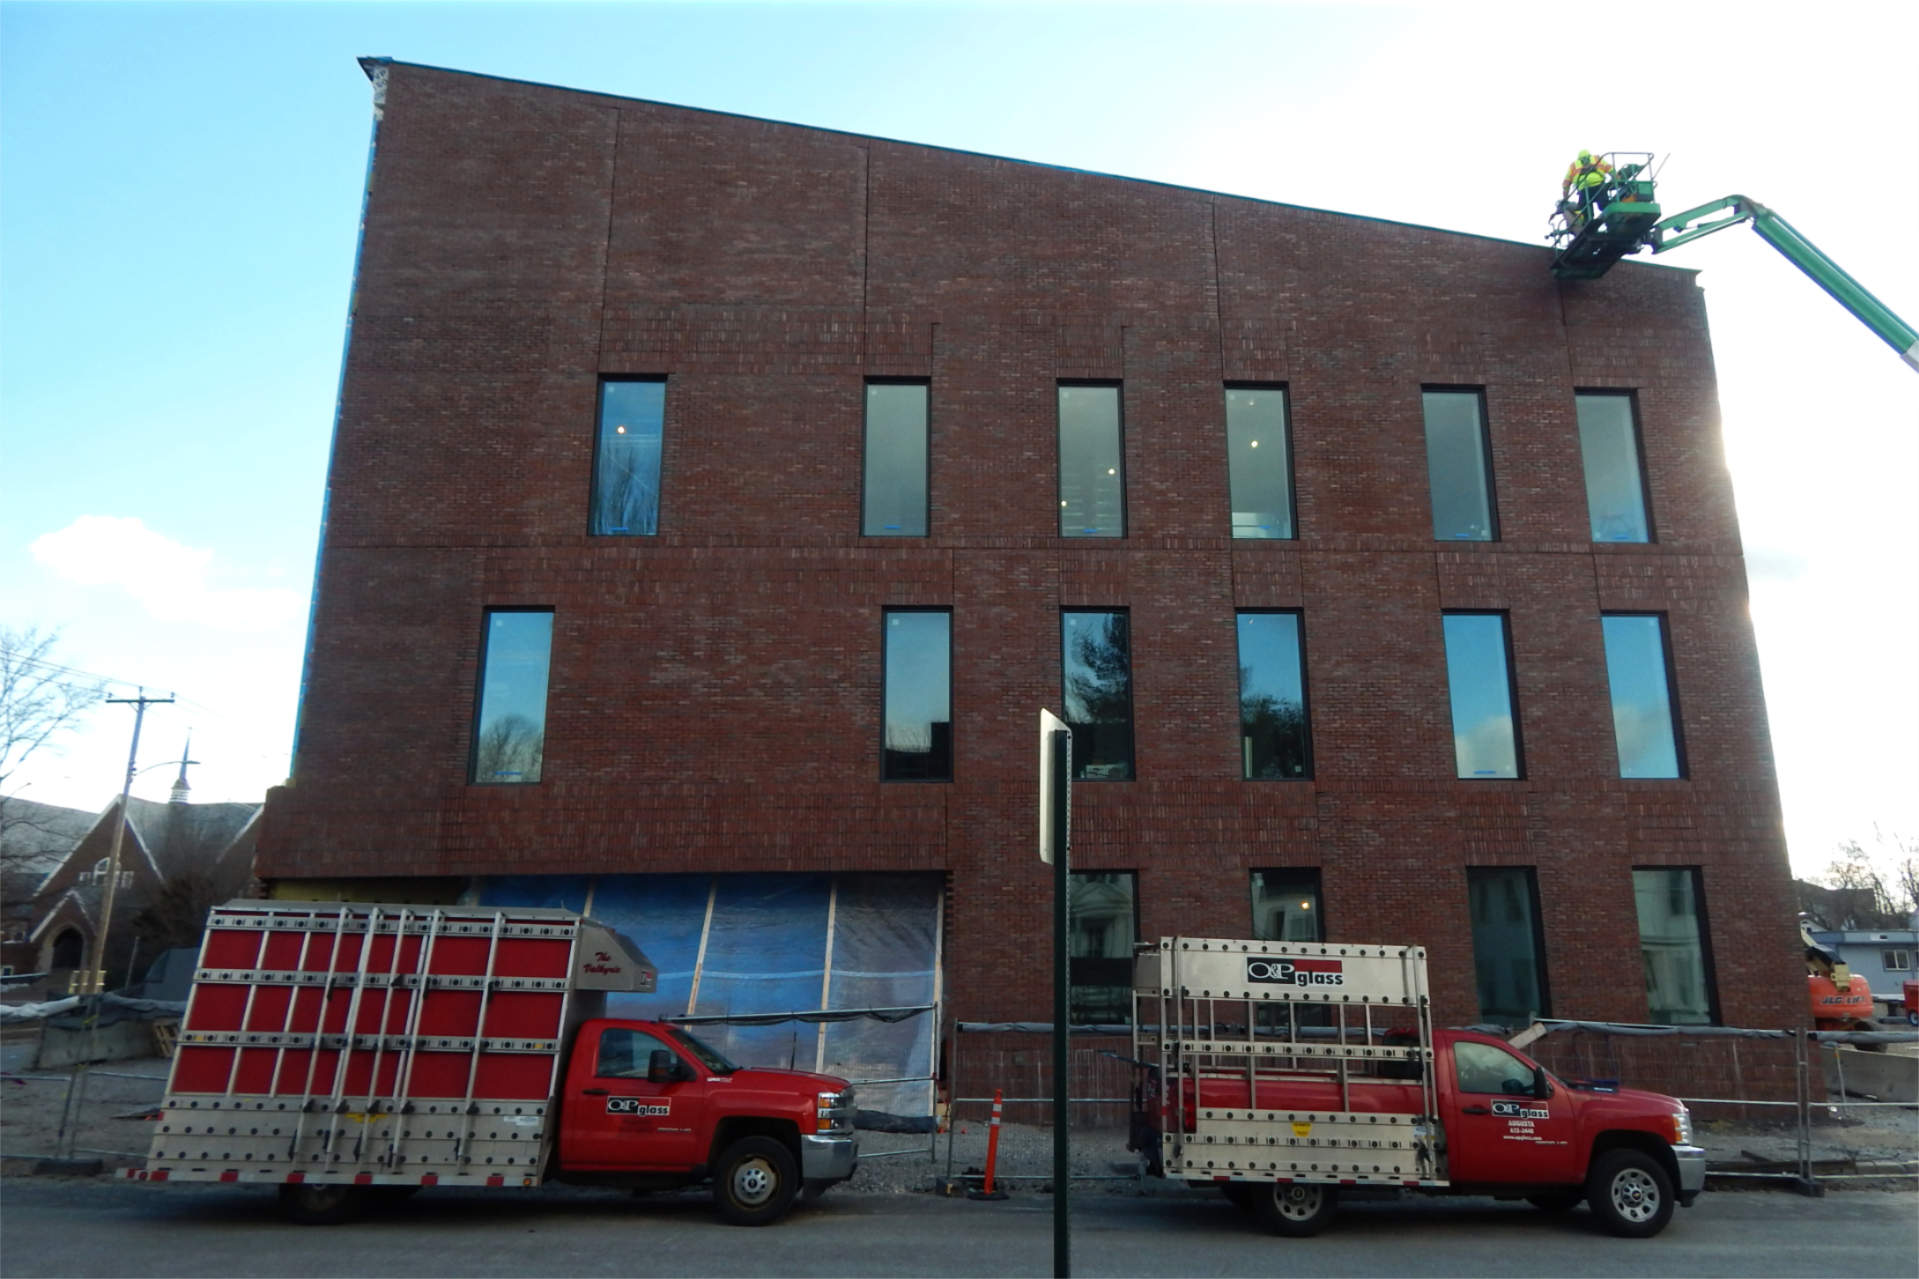 Trucks from the Augusta, Maine, architectural-glass firm of O&P sit on Nichols Street near the Bonney Science Center early on Dec. 29. With Lockheed Window Corp. of Rhode Island providing additional hands, O&P is the glass subcontractor for the science center project. (Doug Hubley/Bates College)